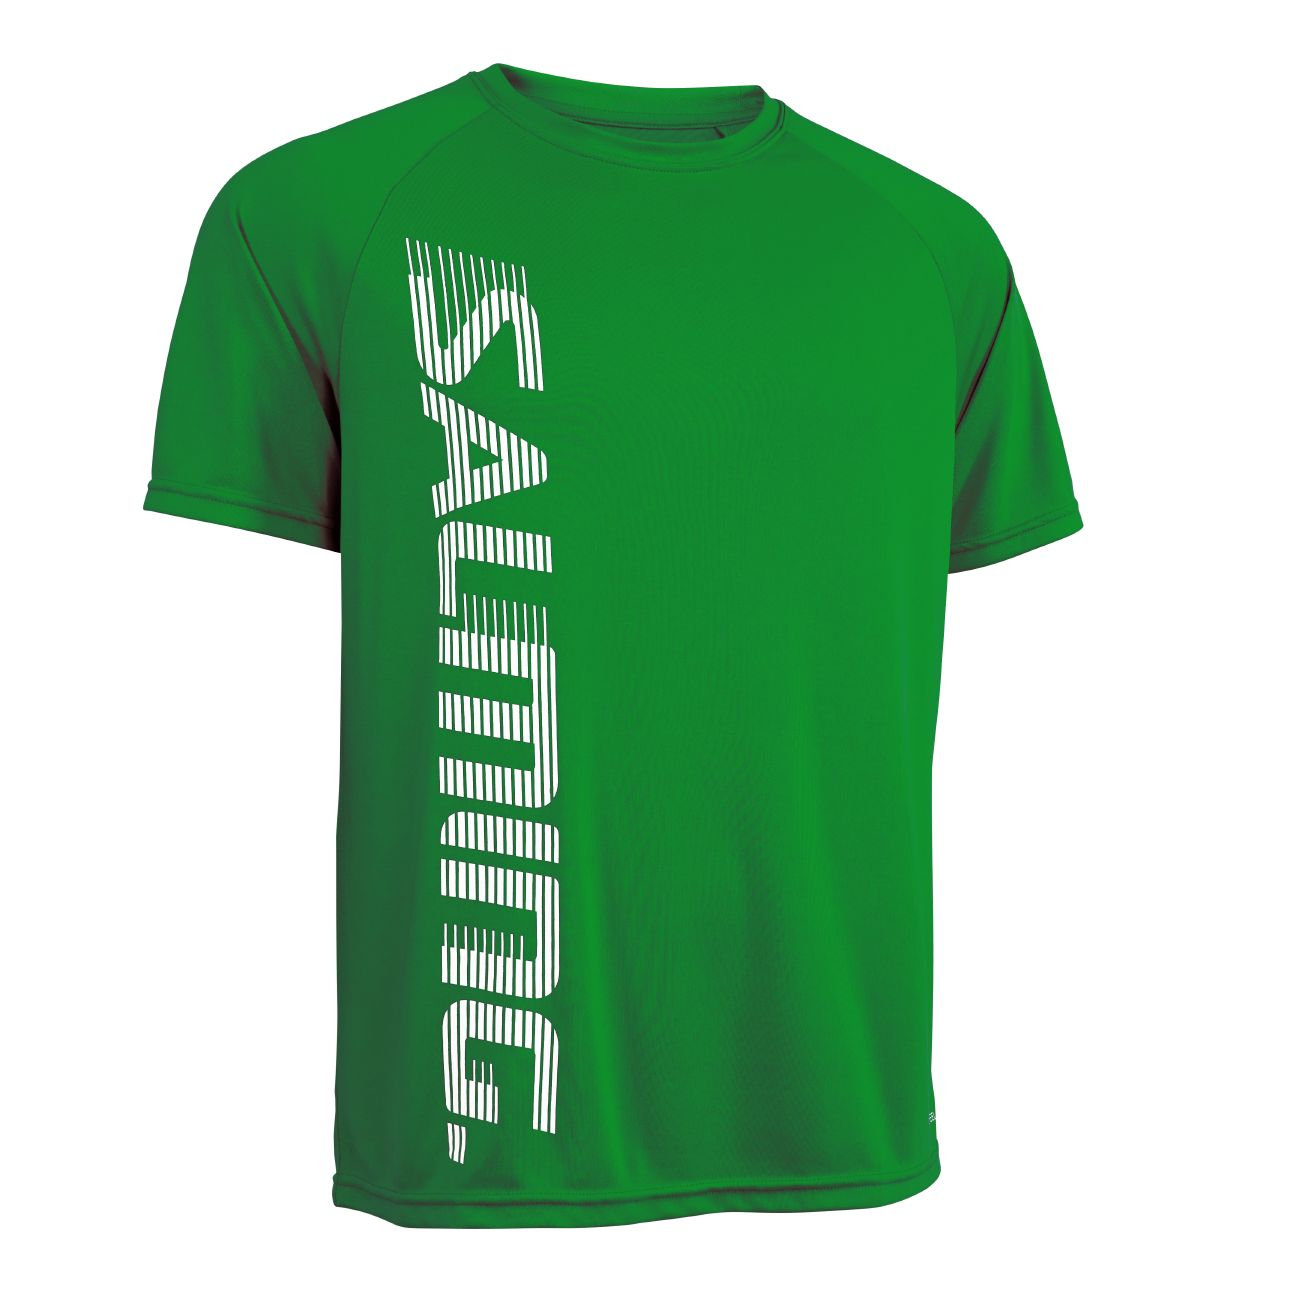 Salming Training Tee 2.0 Modrá, L